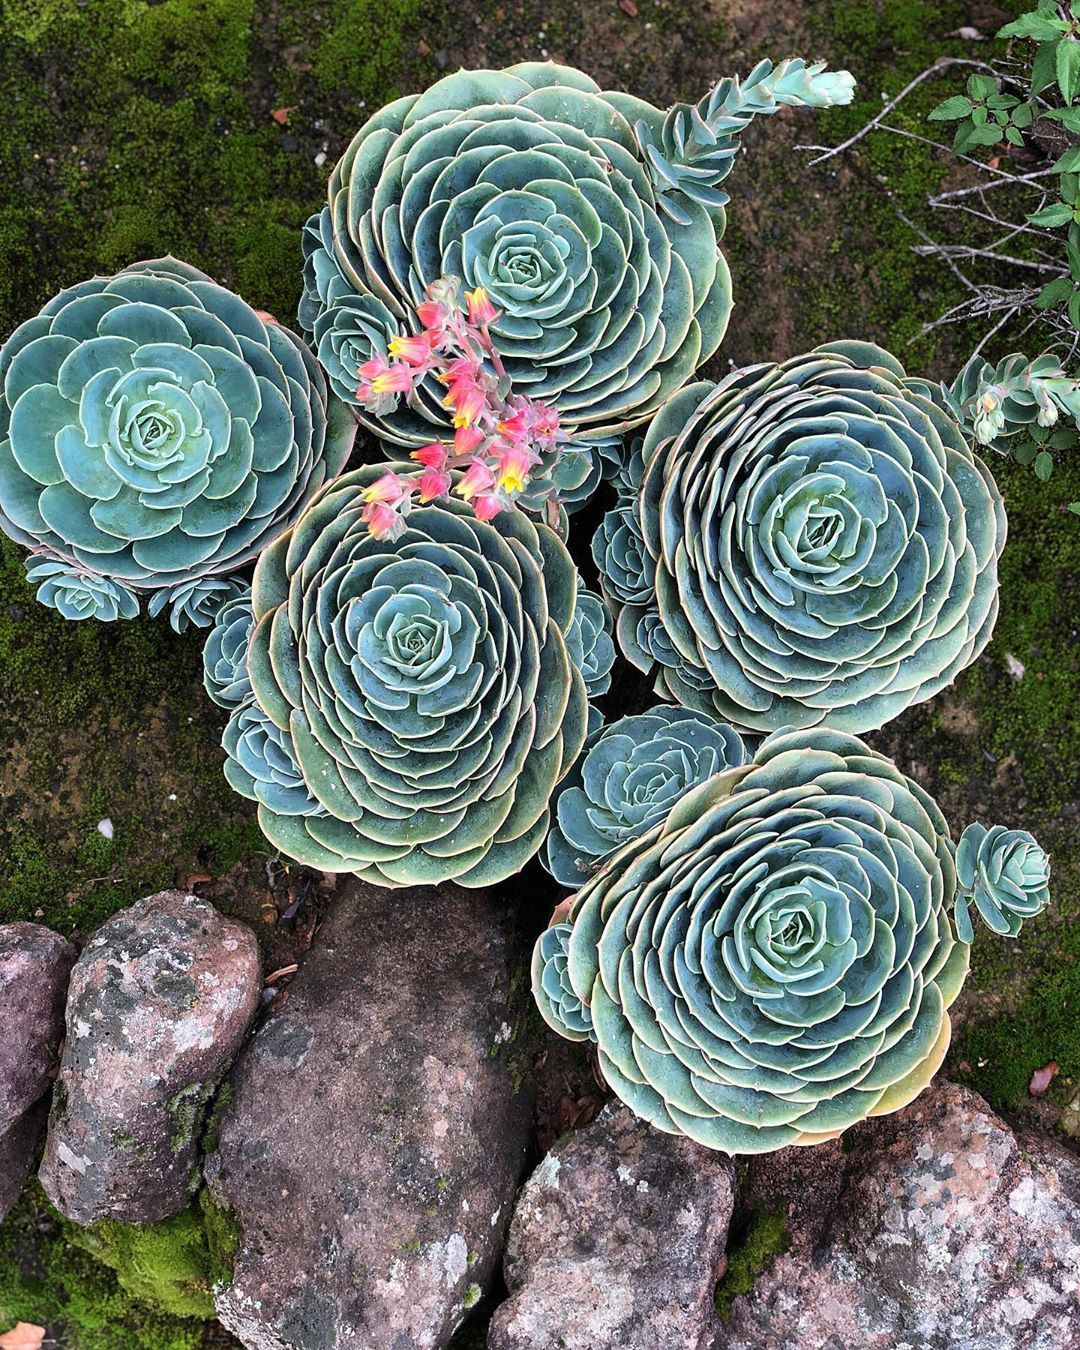 Just Look At Those Perfect Rosettes This Is An Old Picture These Beauties Have Since Been Planted In Their Own Pots Echeveria Echeveria Imbricata Blue Rose